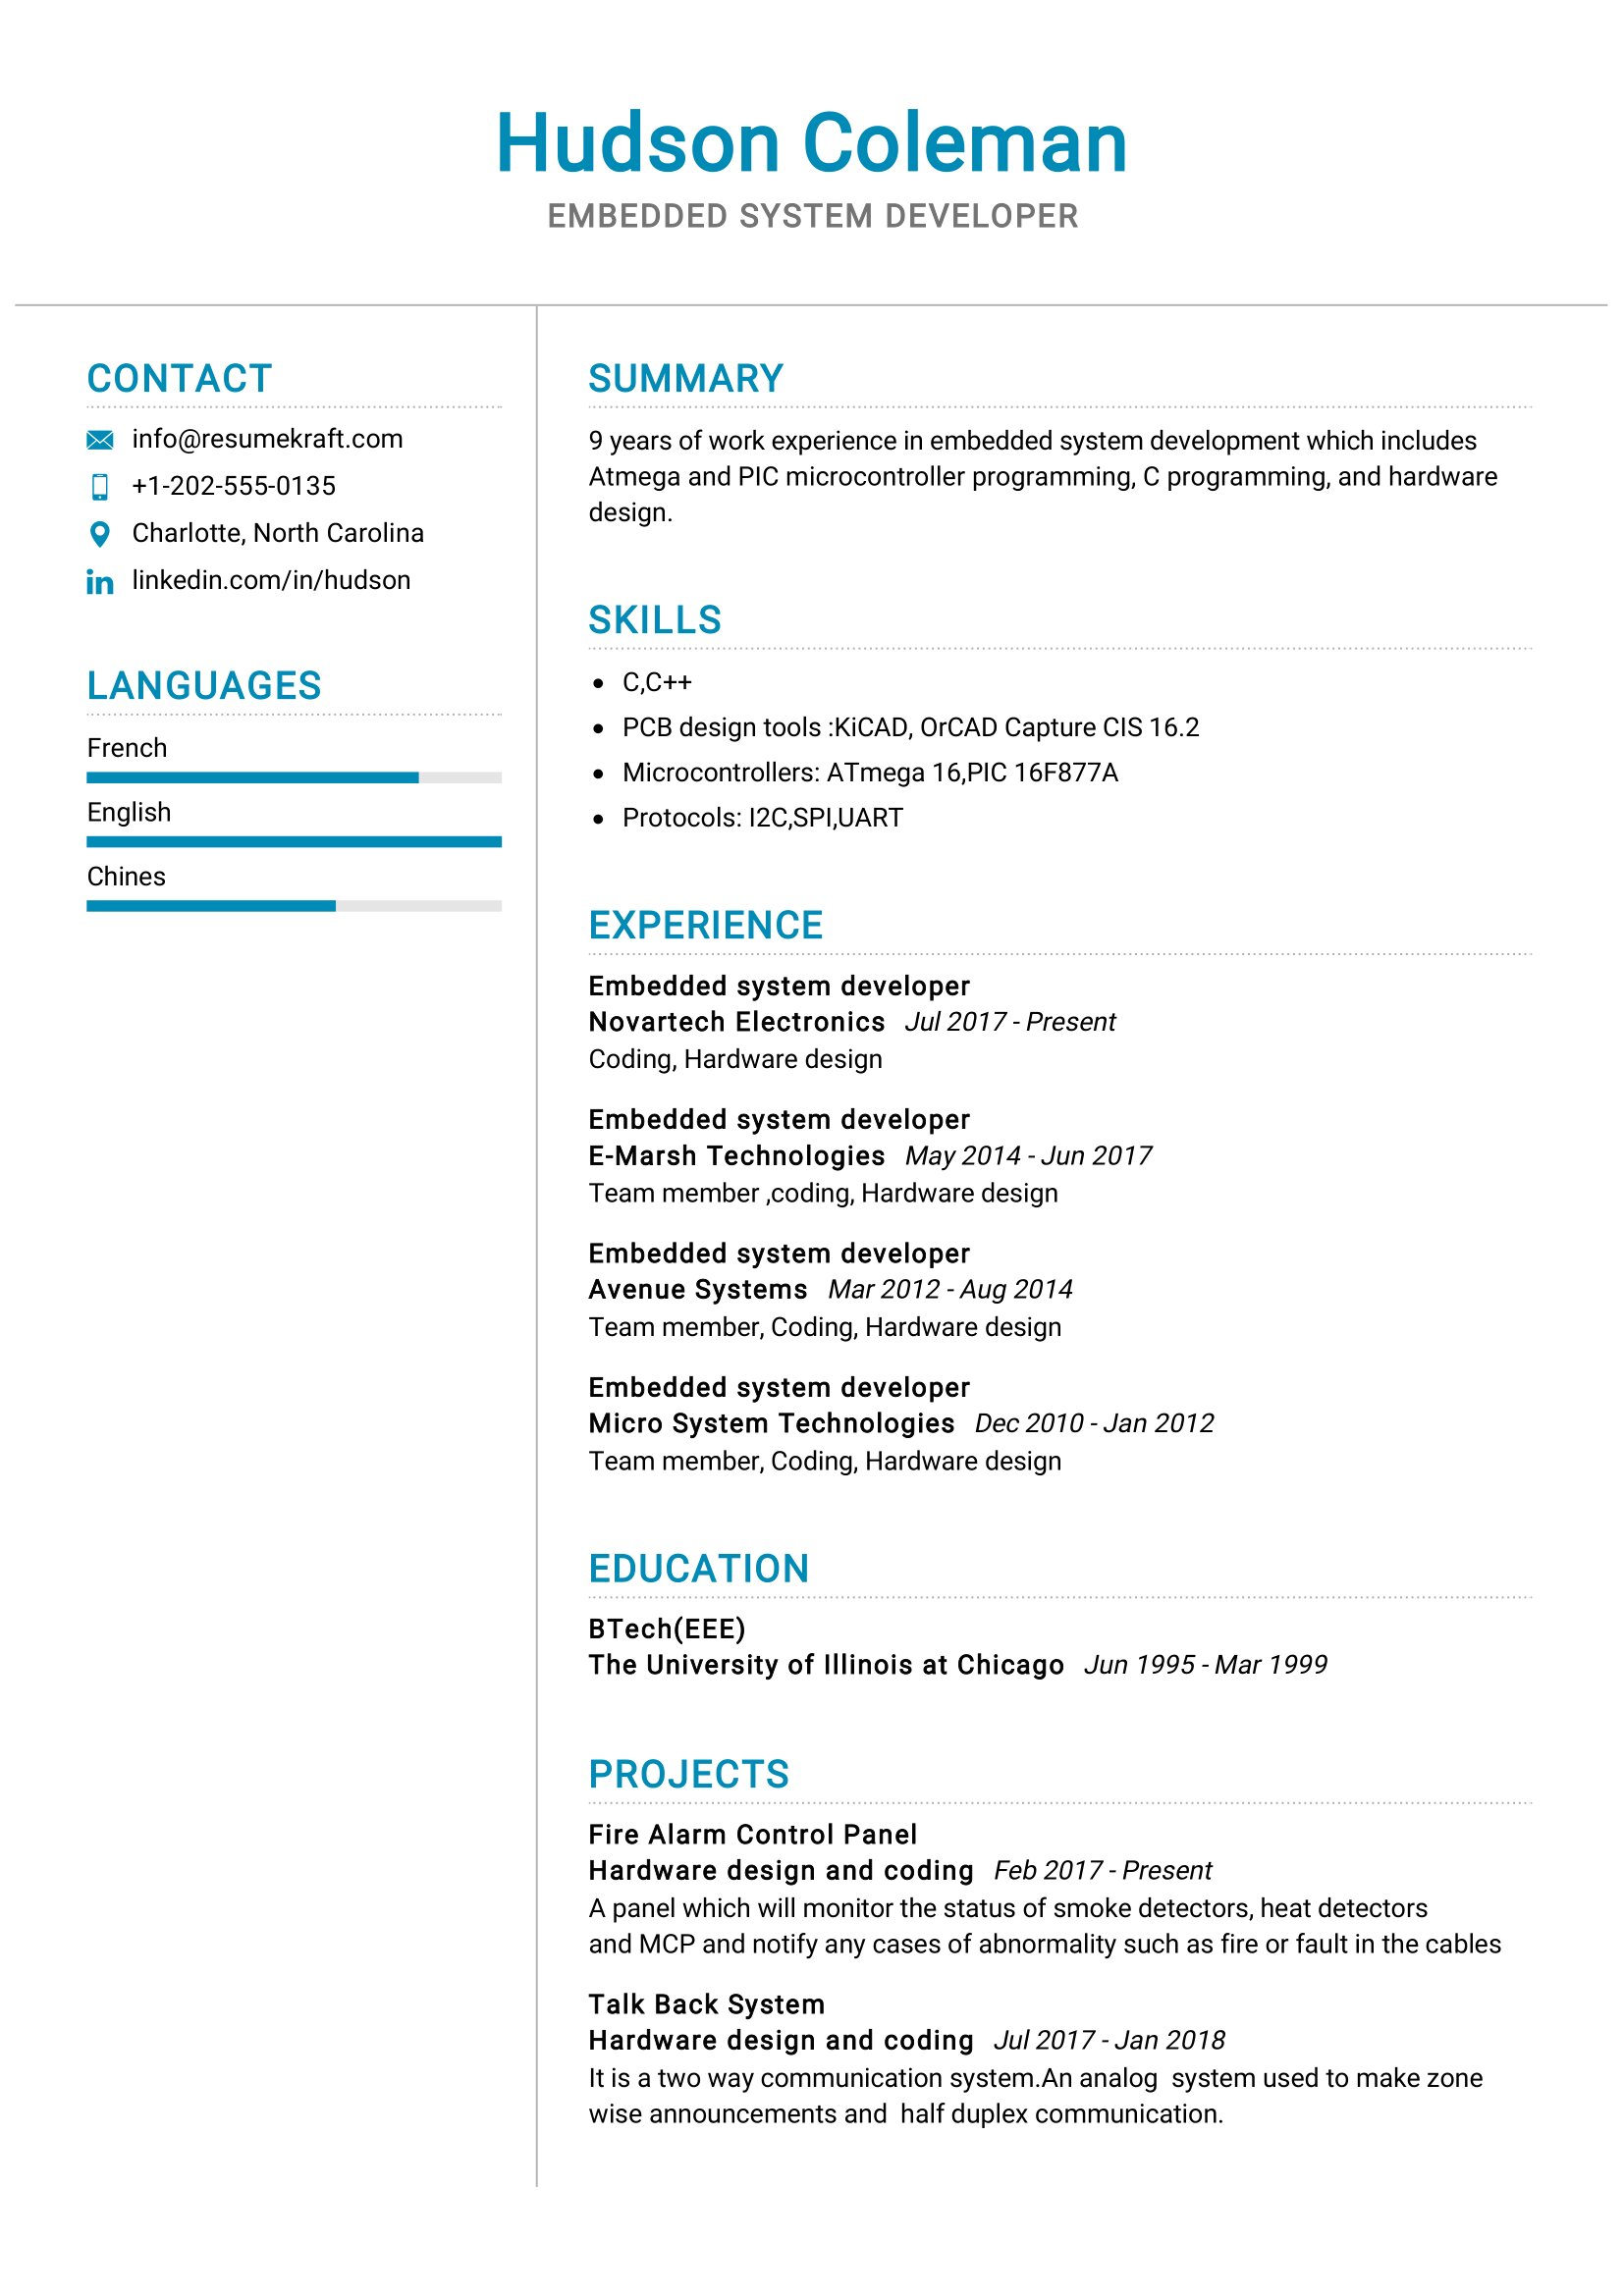 Filmmaker Resume: Examples and Guide for a Filmmaking CV